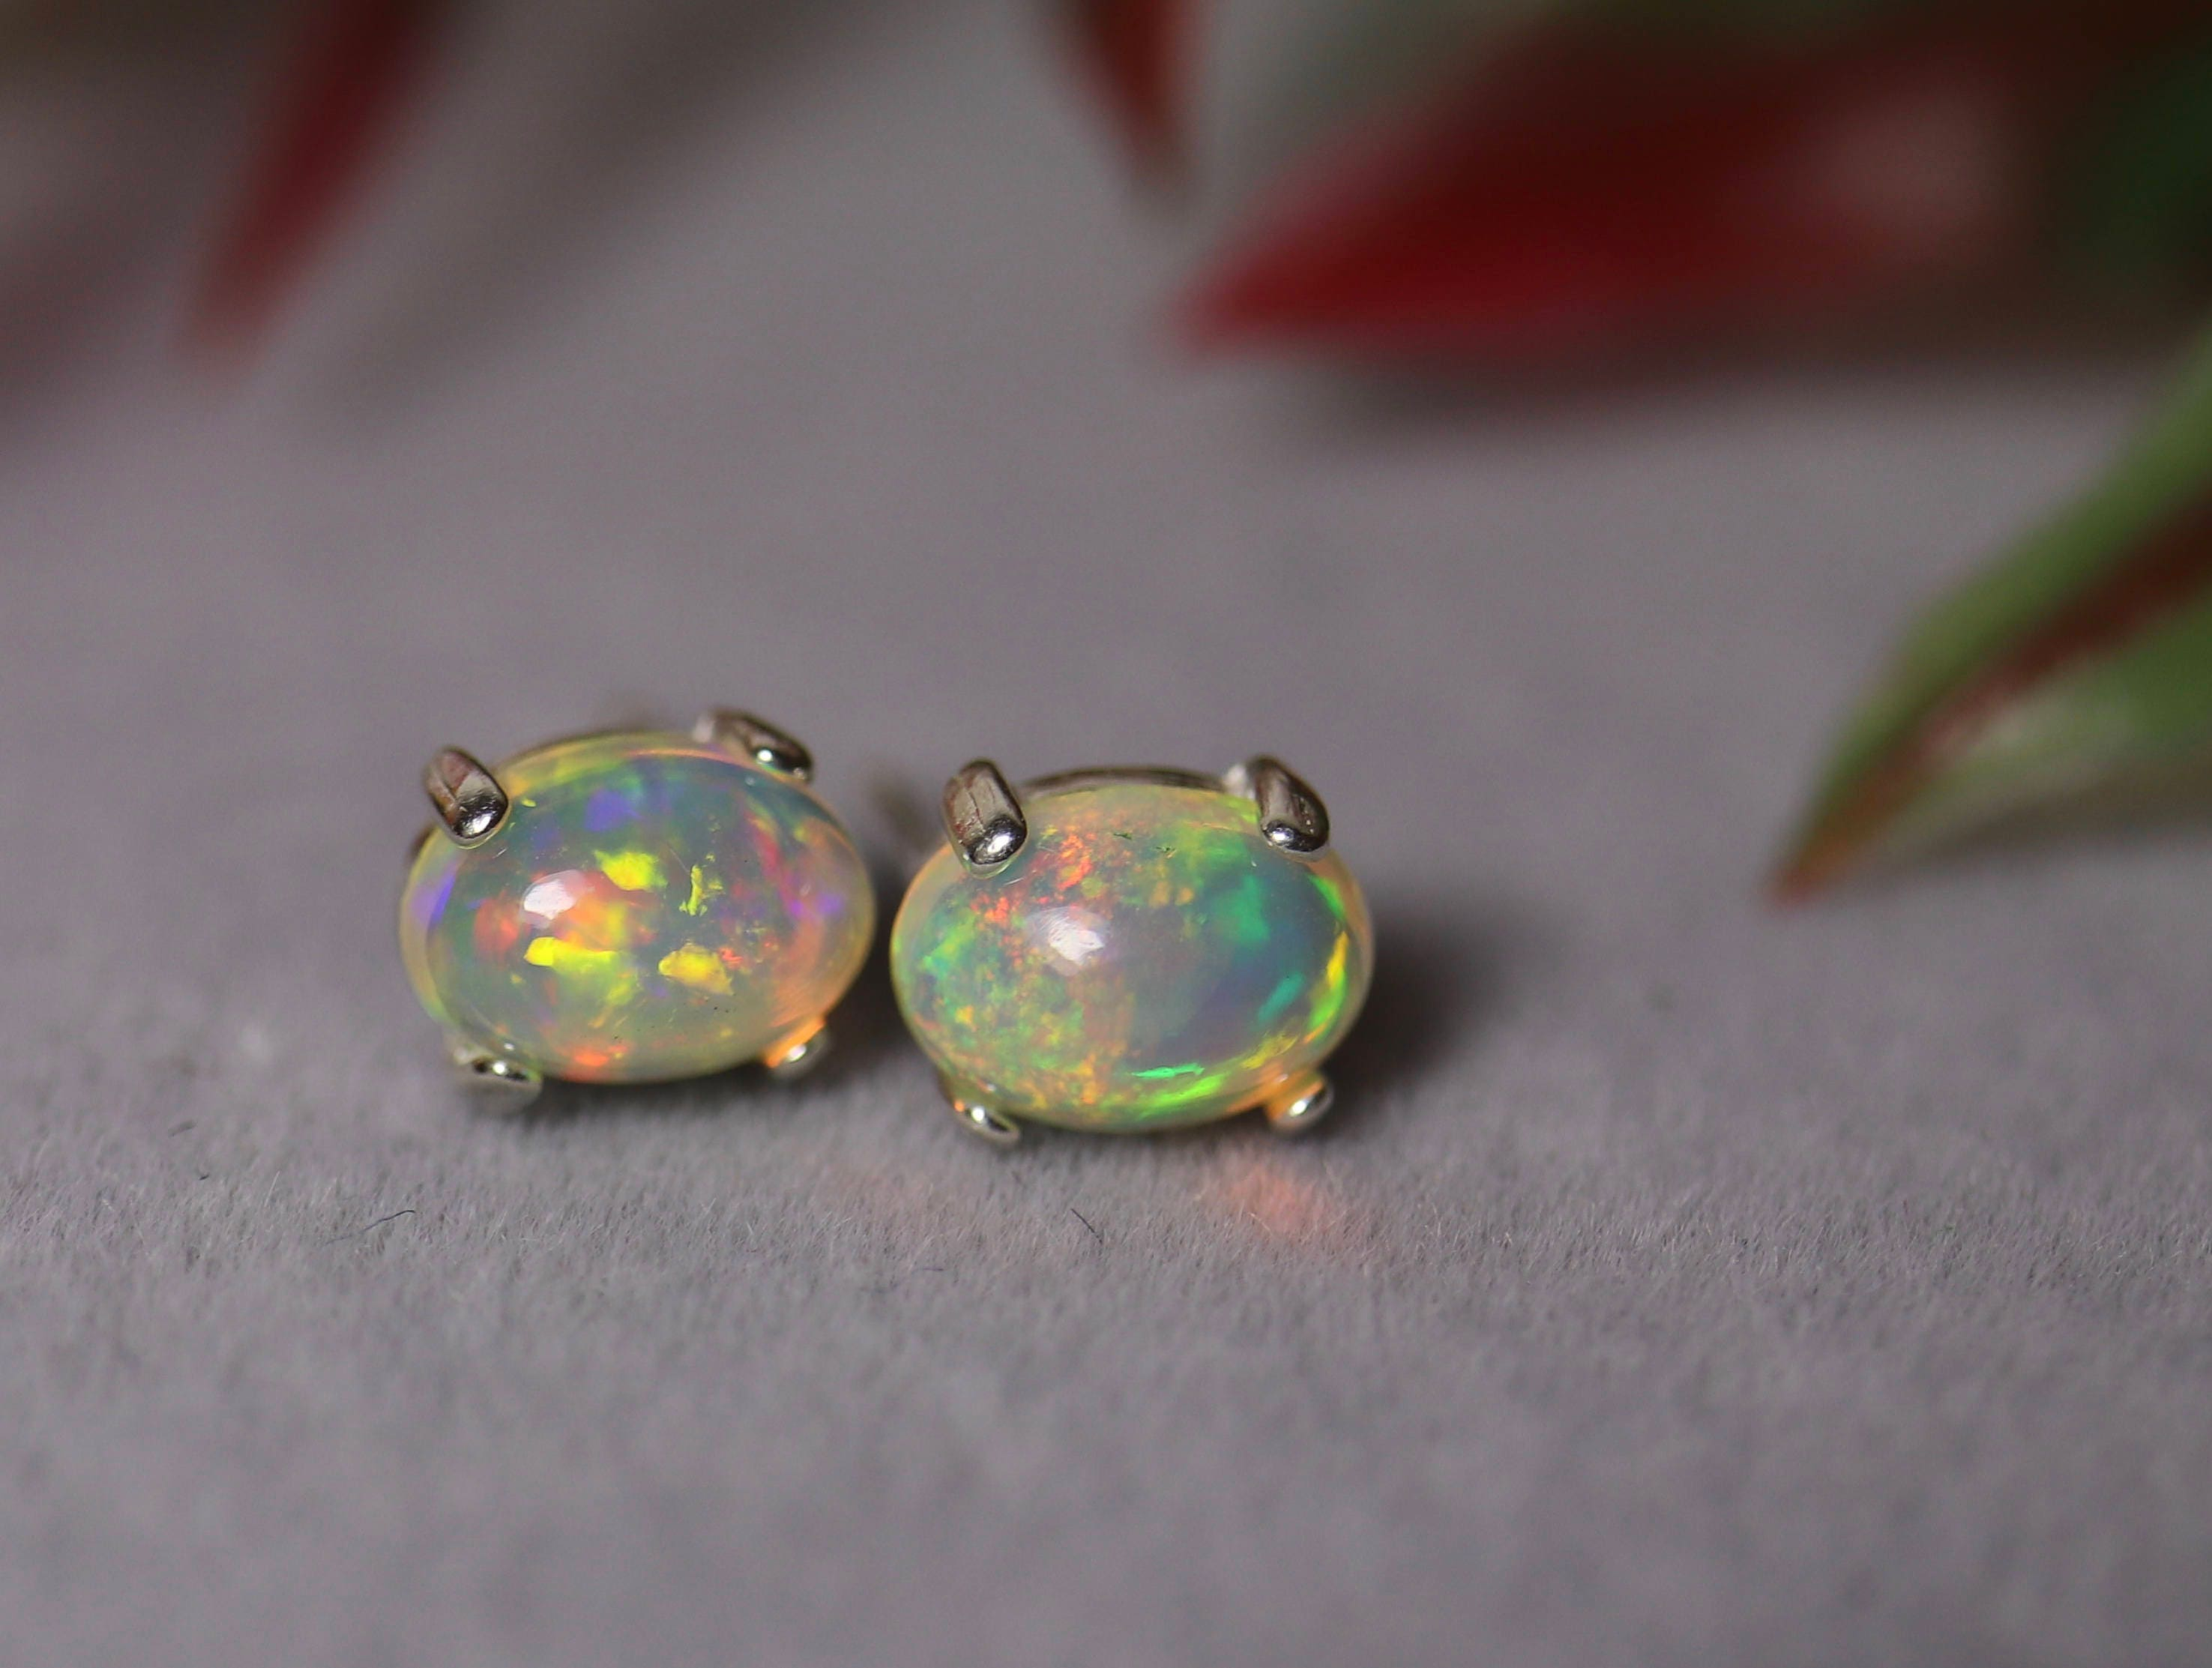 genuine gold earrings original kidssydney light yellow dsc solid opal collections australian shop